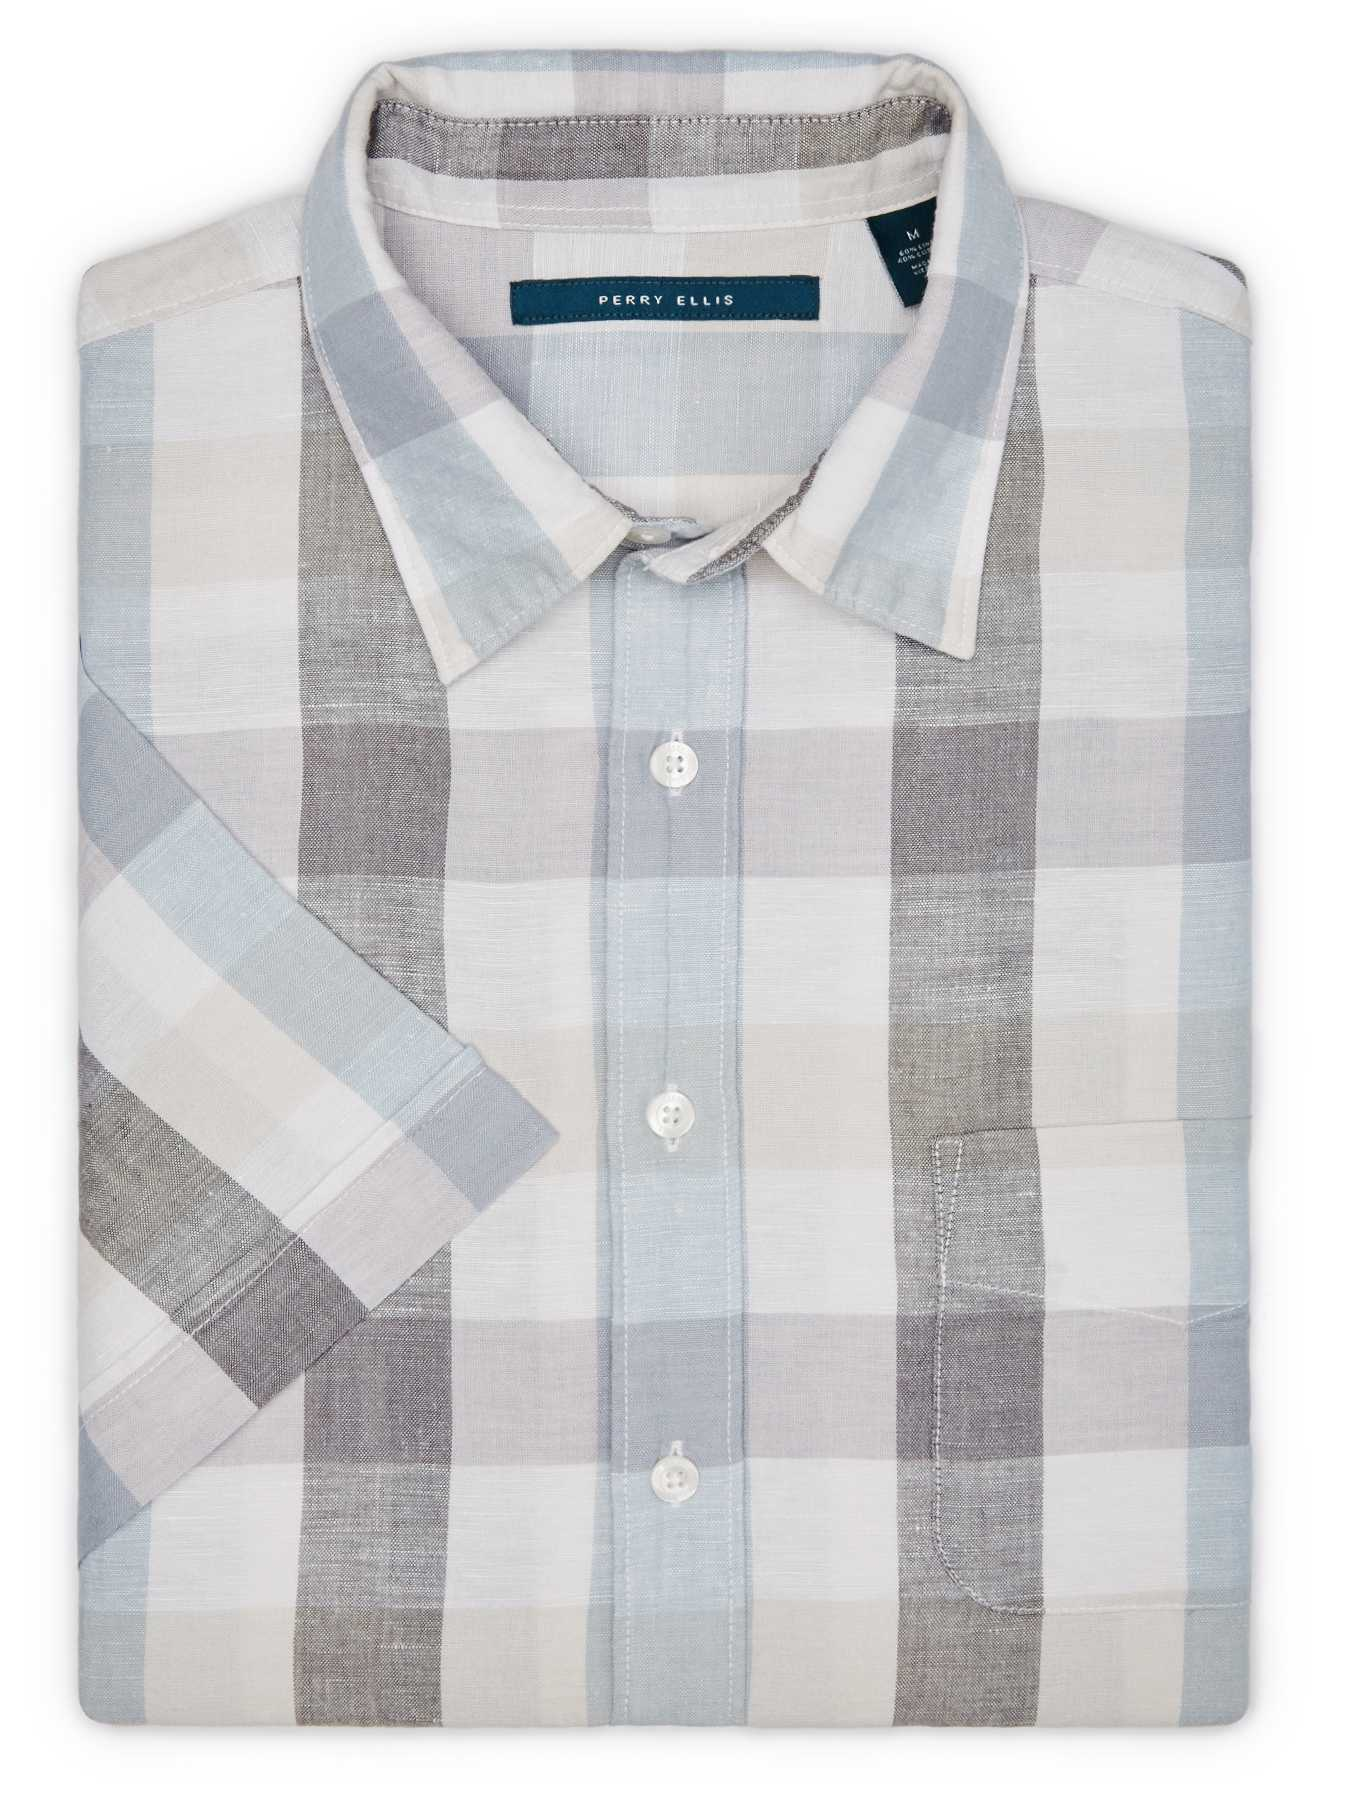 Perry Ellis Short Sleeve Plaid Linen Shirt